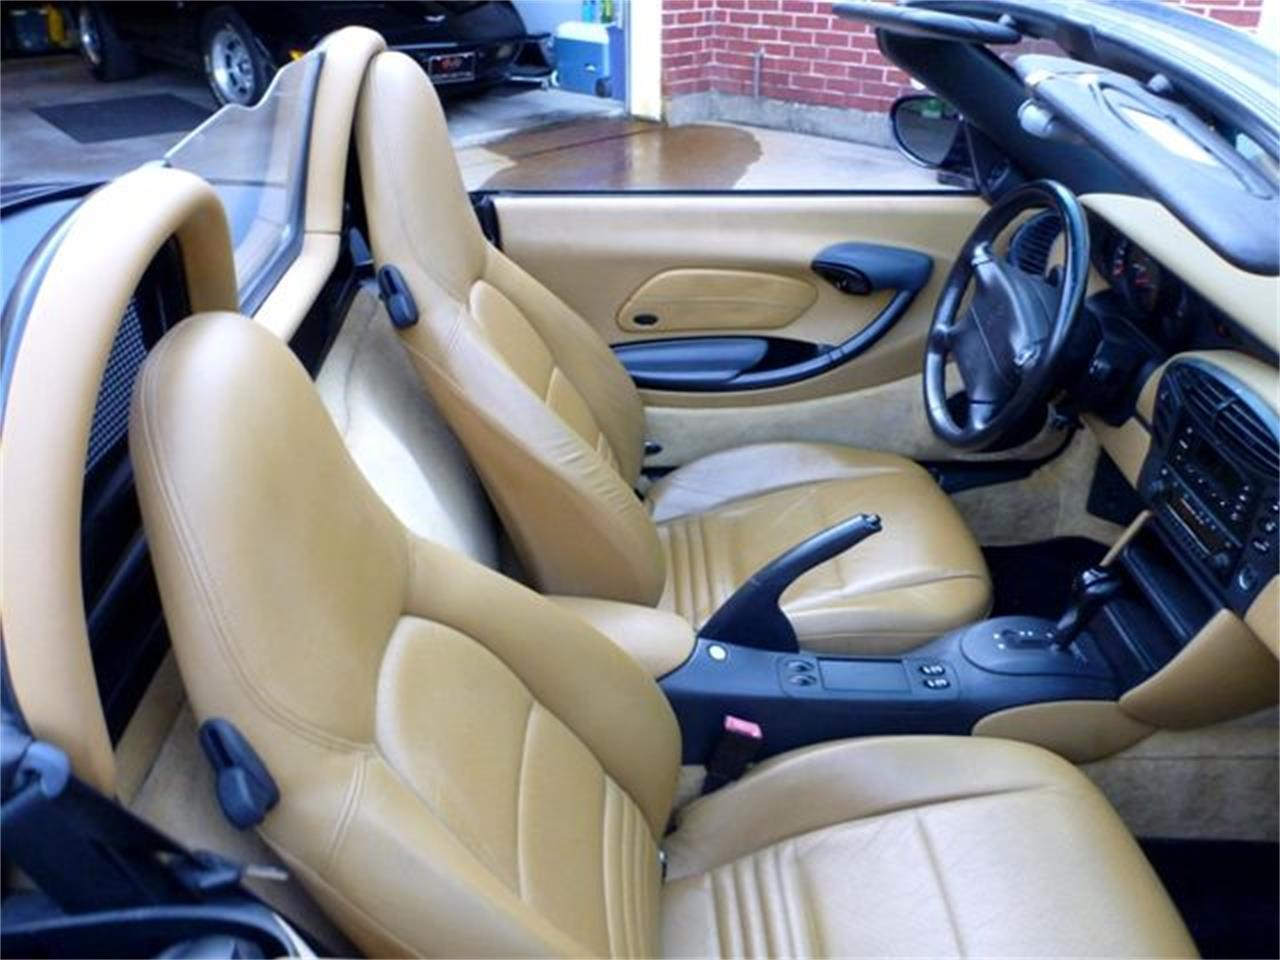 Large Picture of '99 Porsche Boxster located in Arlington Texas - $8,500.00 Offered by Classical Gas Enterprises - LF20